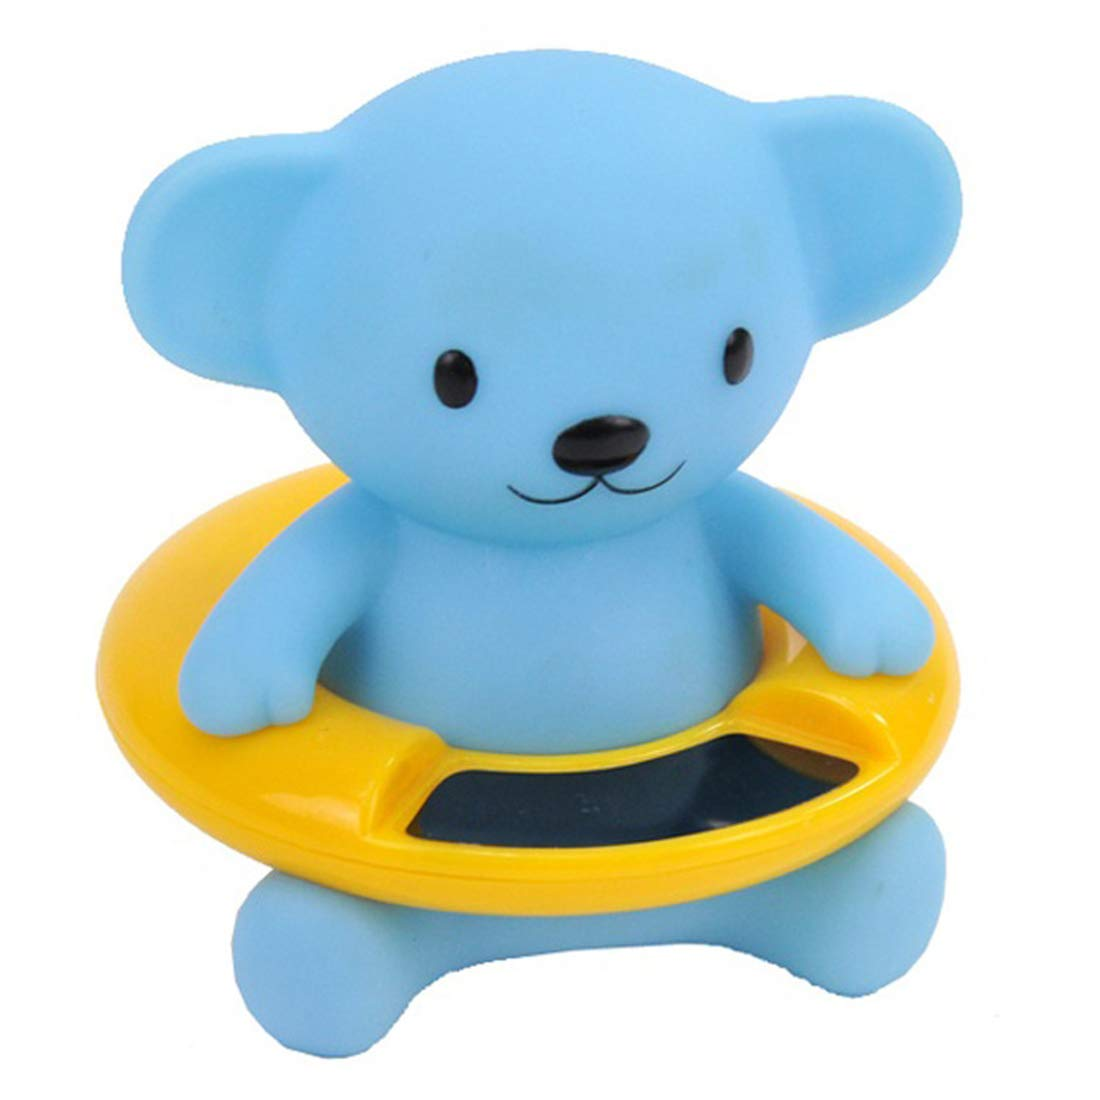 Baby Bath Thermometer with Room Thermometer(37-40 Degree centigrade is Recommended) Floating Alarm for Infant Bathtub and Swimming Pool/Tester Toy The Infant Safety Temperature Thermometer (Bear)